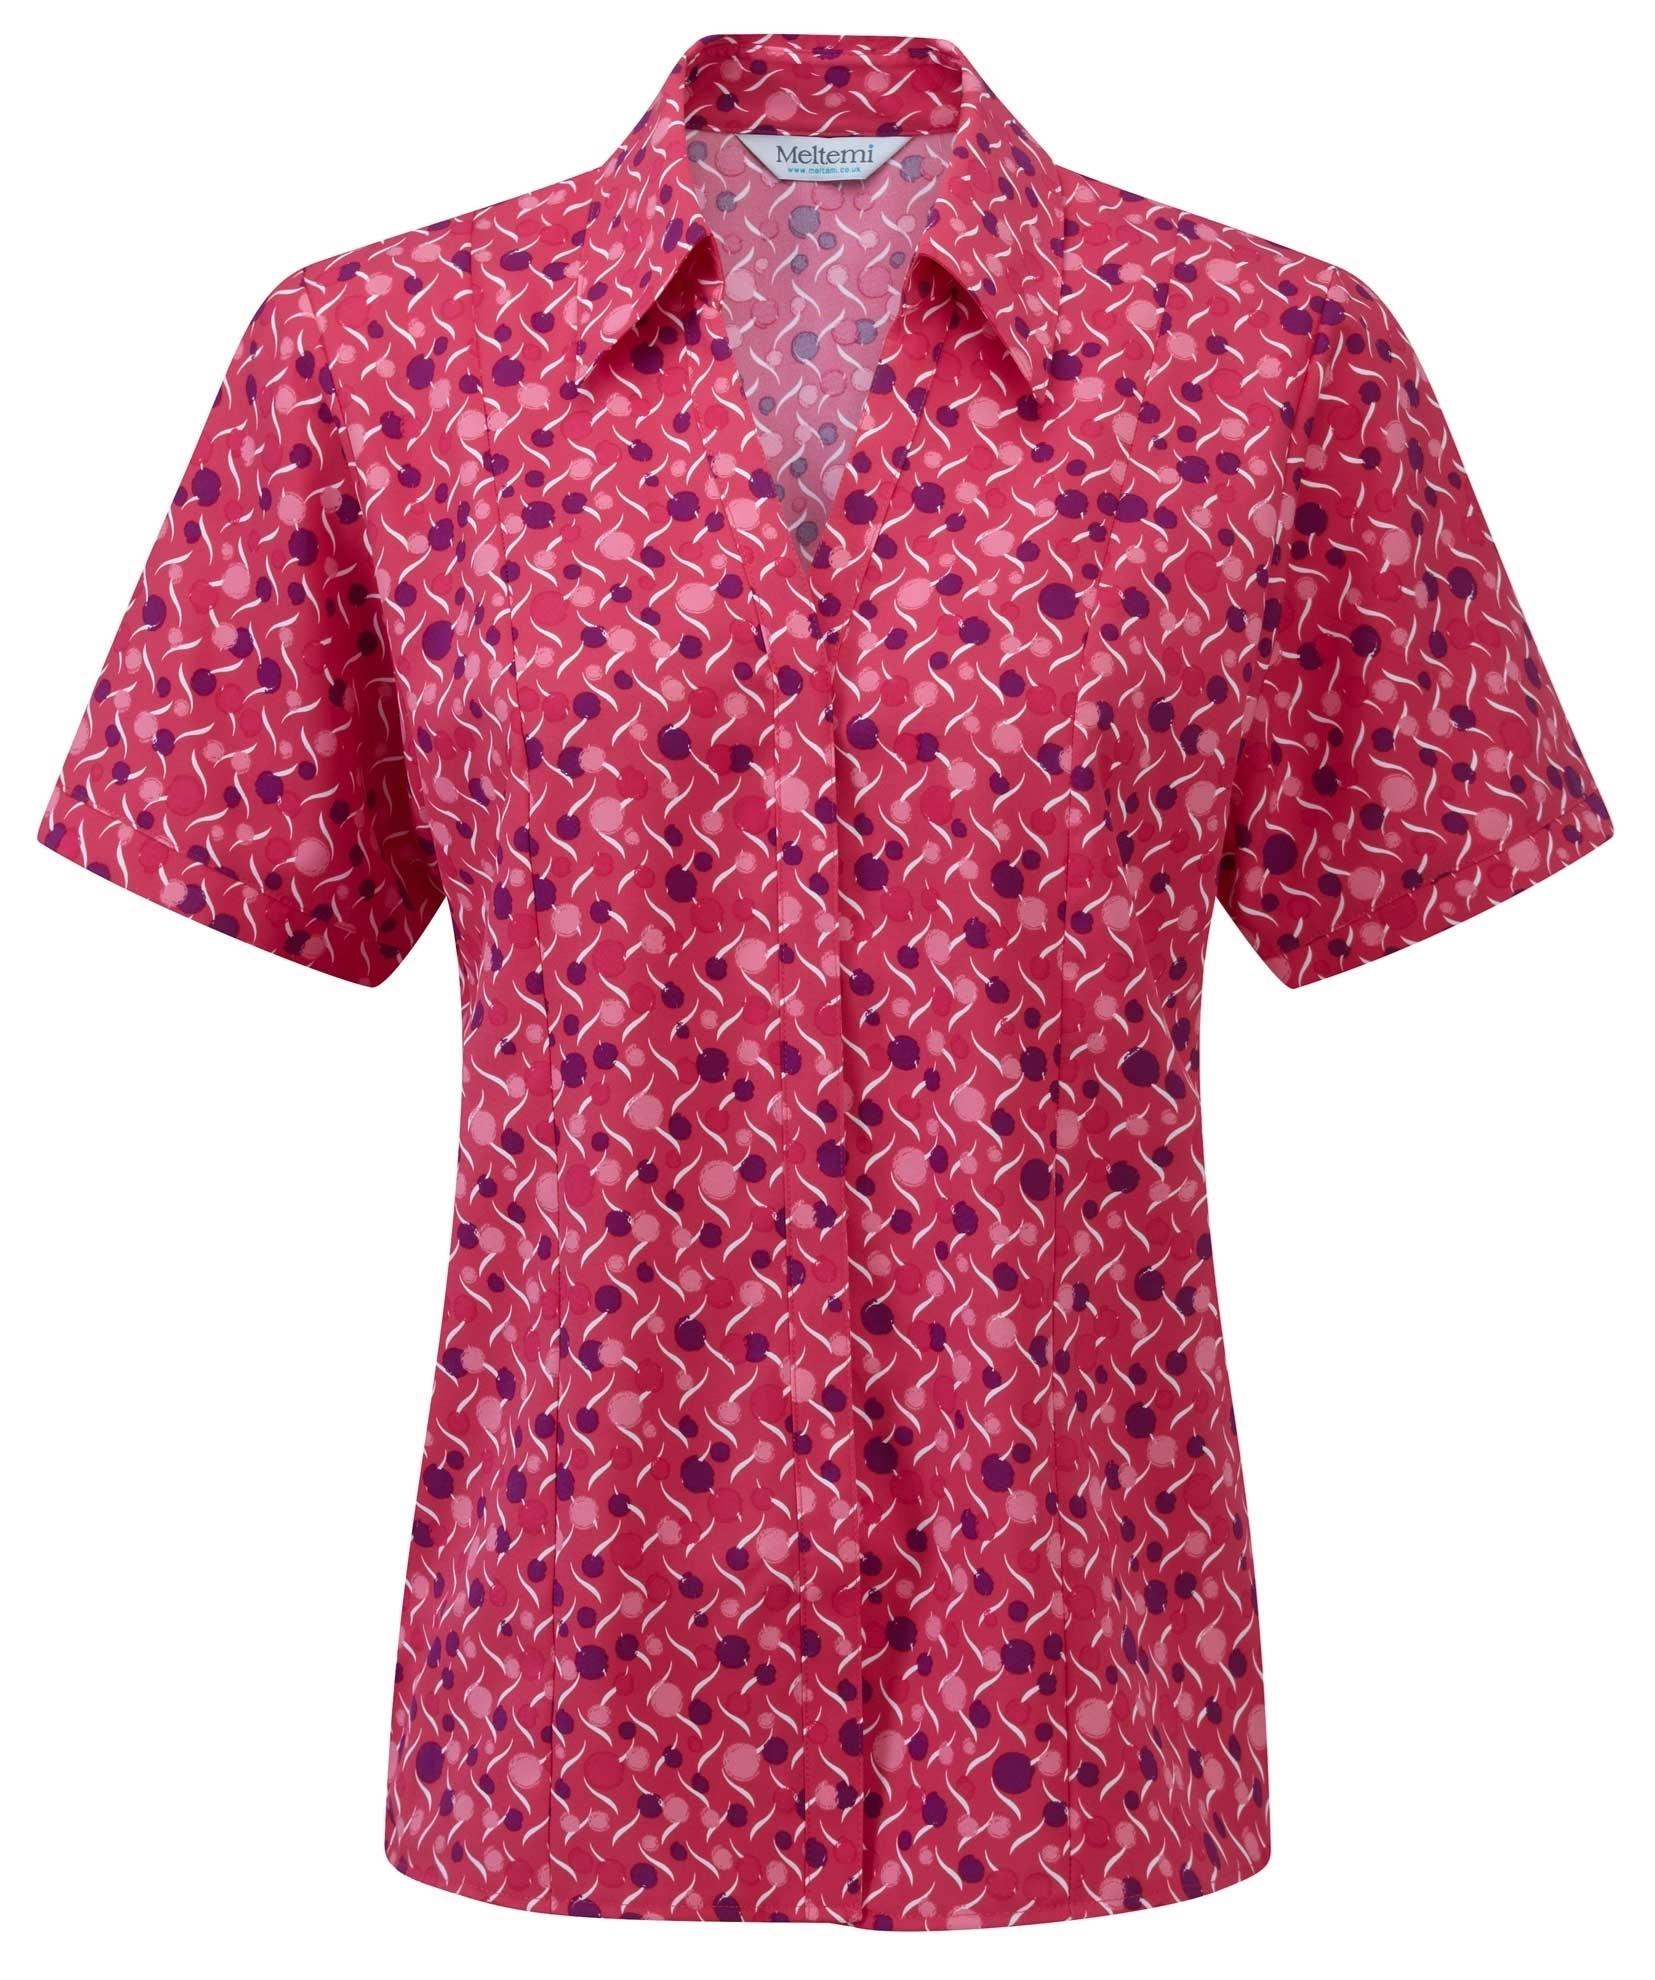 Picture of Semi-Fitted Coolweave Blouse - Cerise/Amethyst Chloe Print